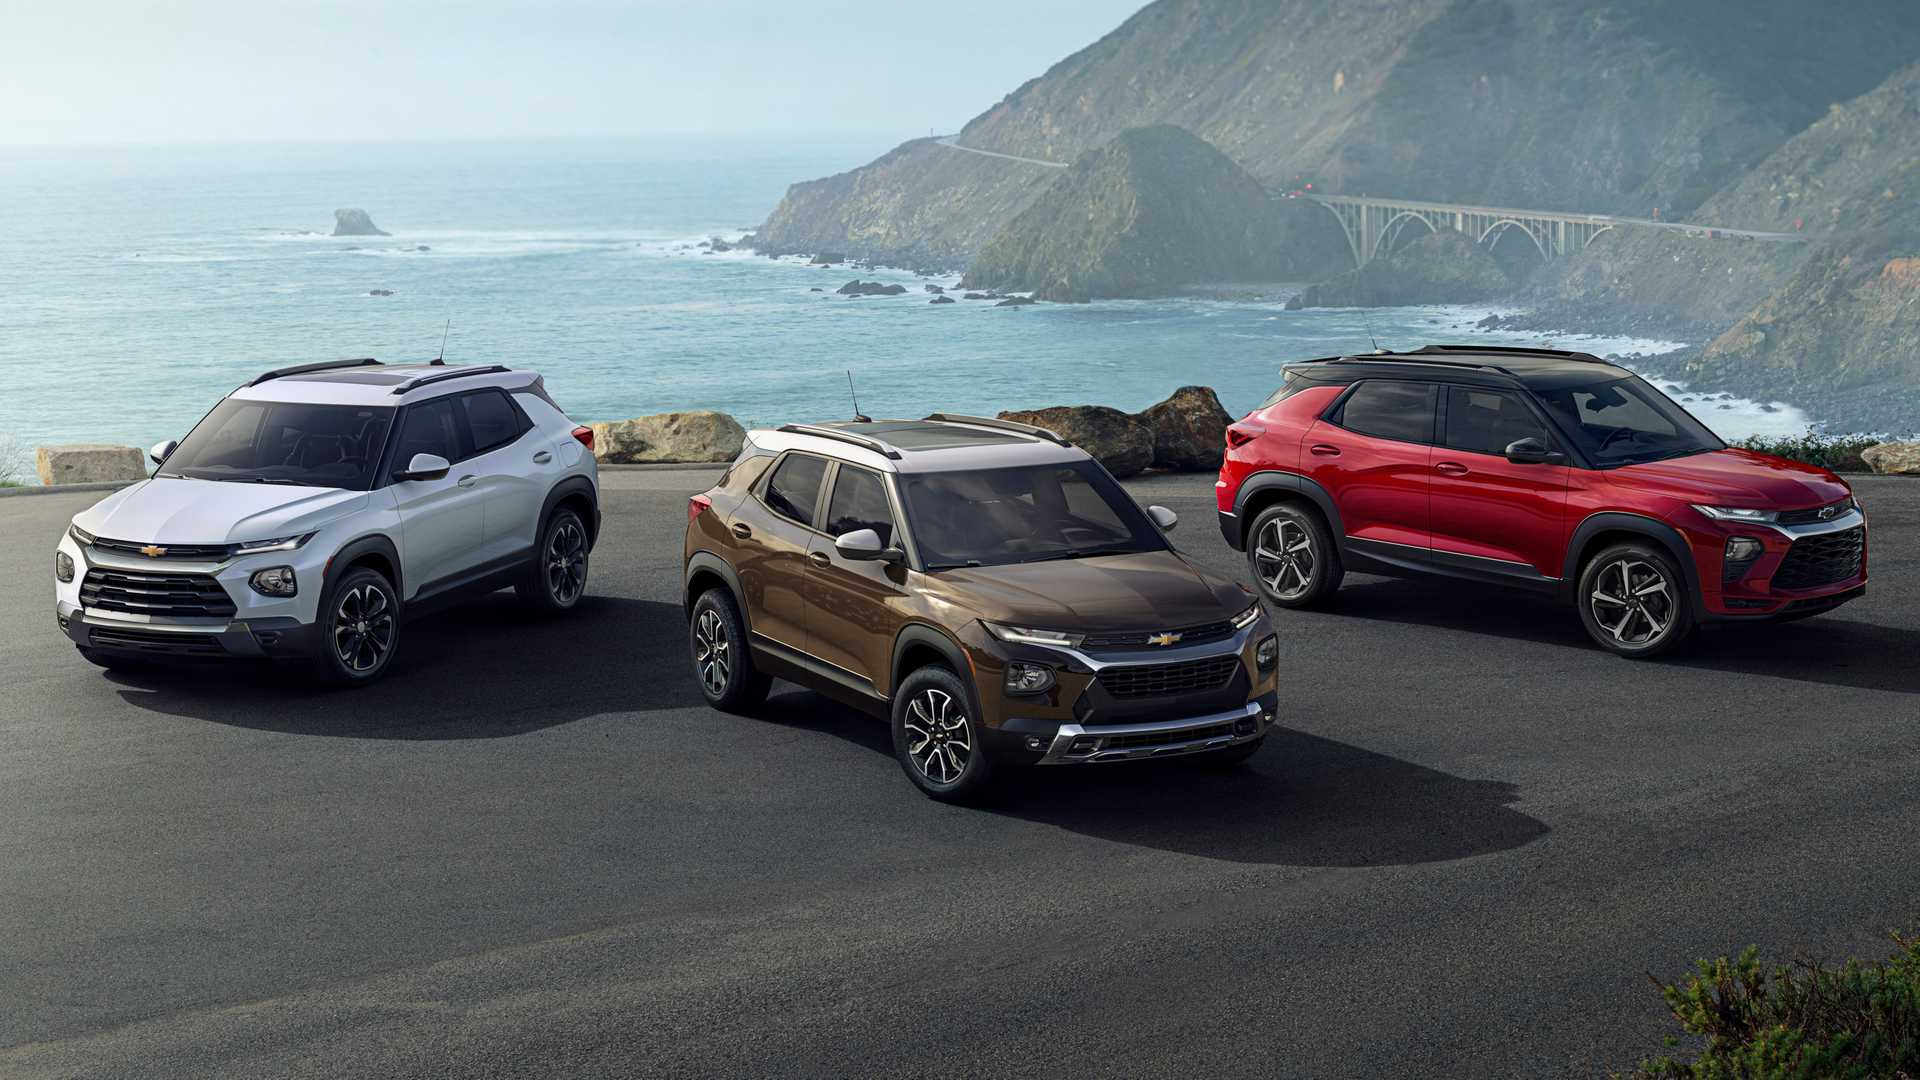 2021 Chevy Trailblazer Arrives At Dealers In Q1 2020 At 2021 Chevy Trax Pictures, Price, Cost